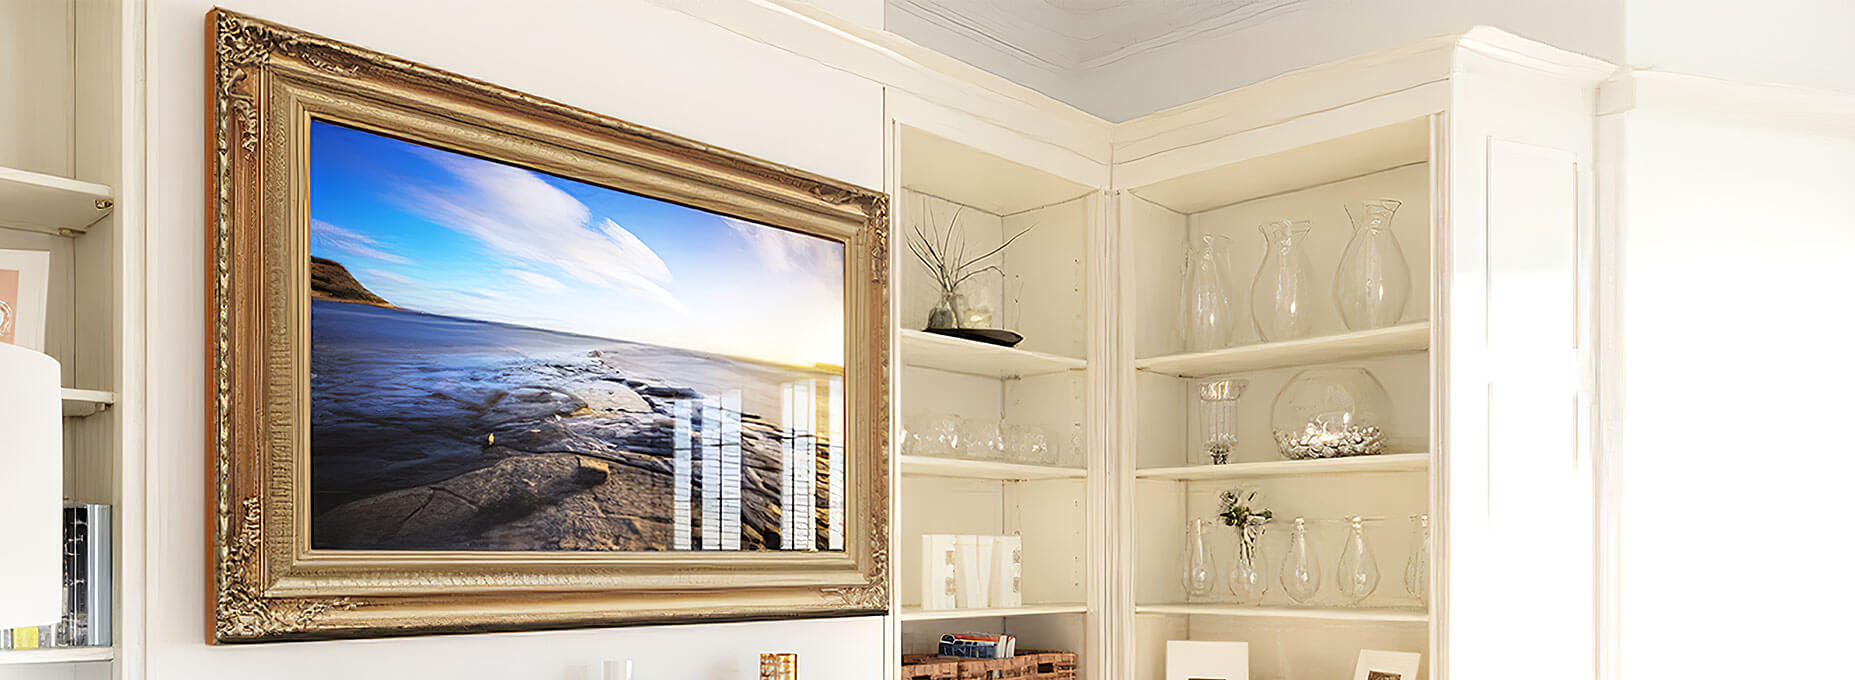 A smart TV framed in gold with classic and intricate designs on four corners attached to a wall in white room.